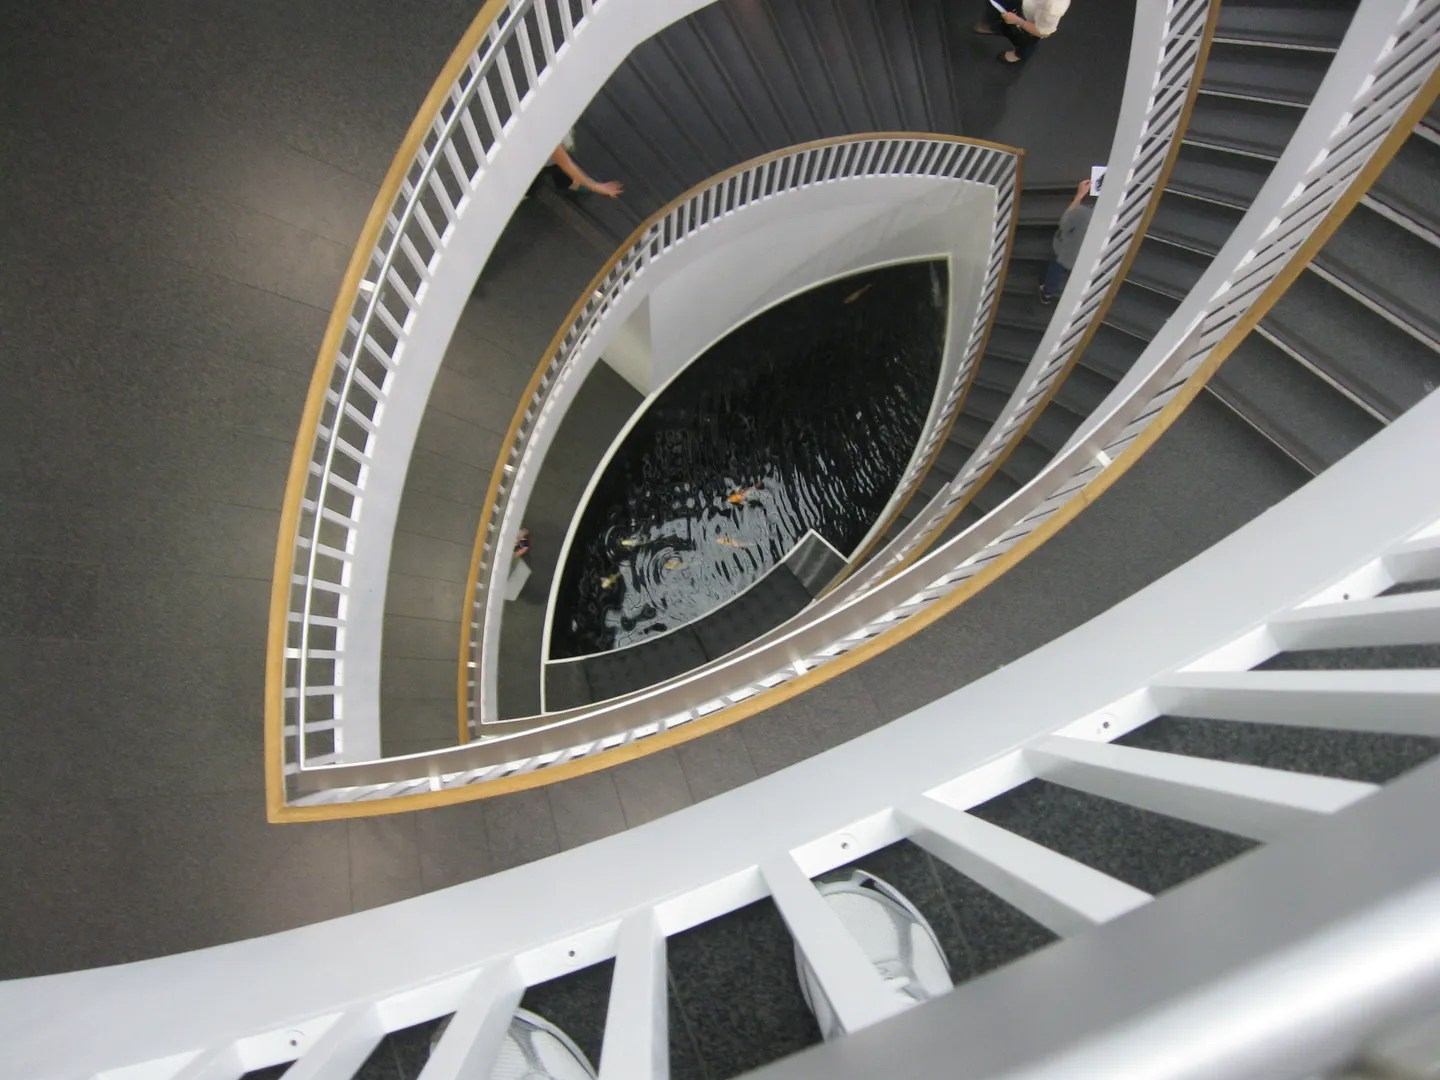 staircase koi pond, Contemporary Museum of Art, Chicago